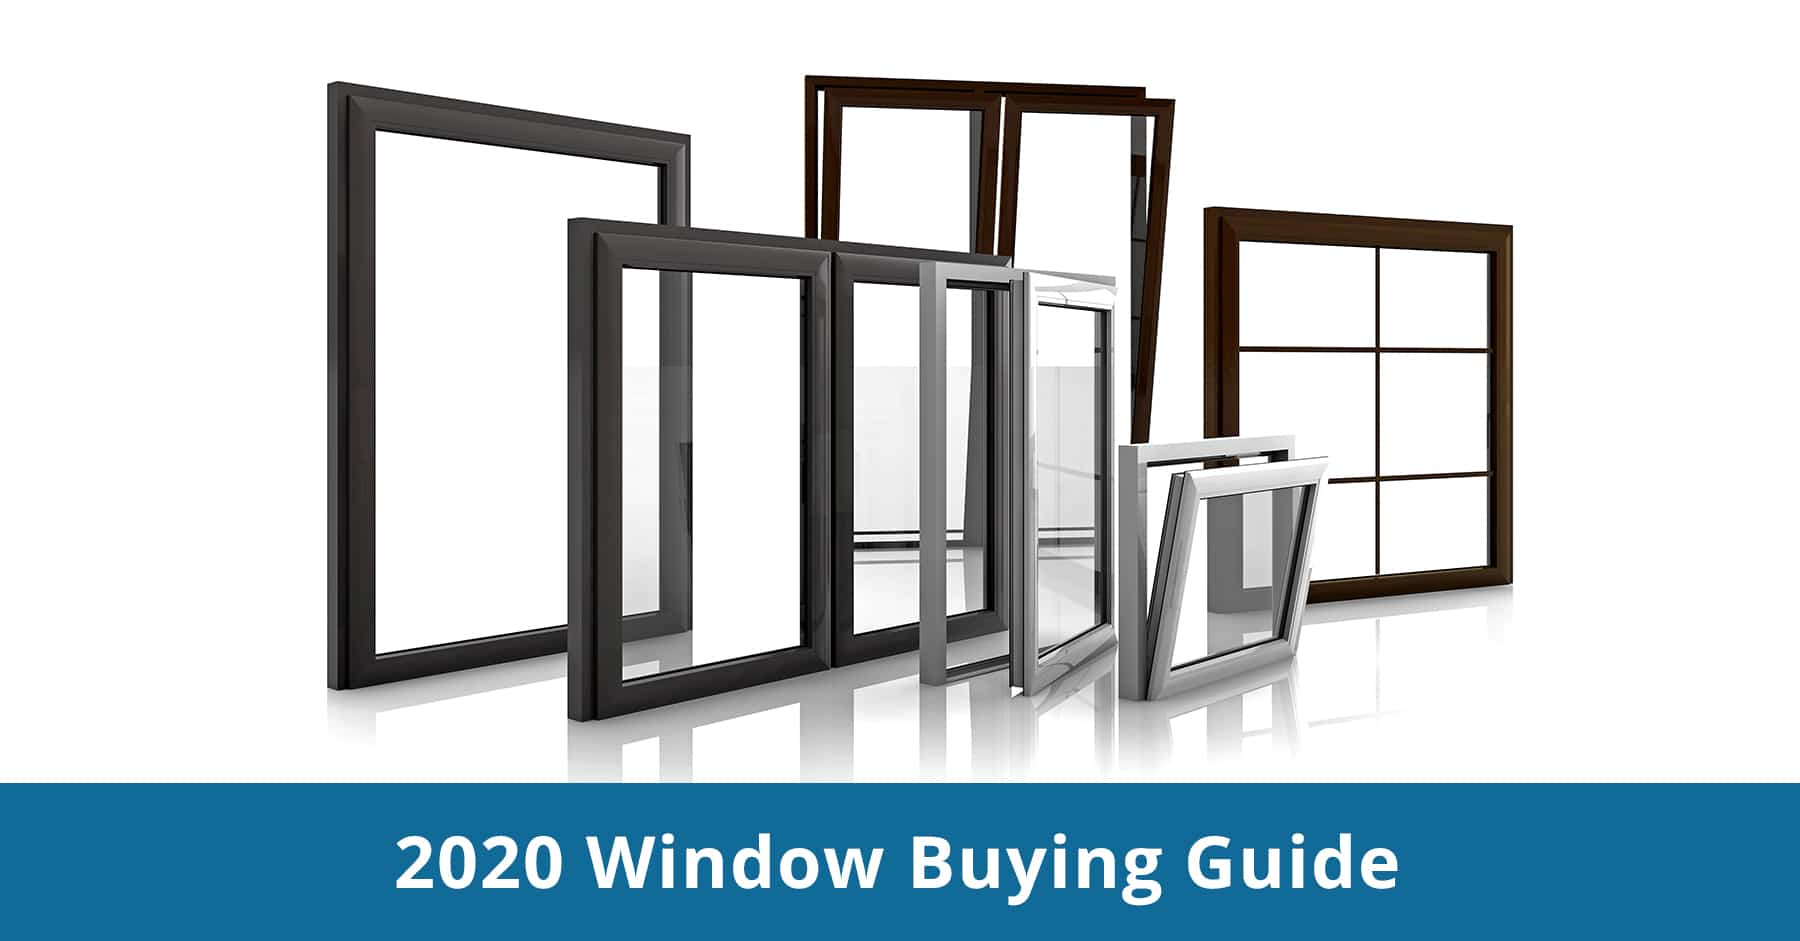 2020 Window Buying Guide | weaver 2020 window guide preview3 | Weaver Exterior Remodeling Barrie